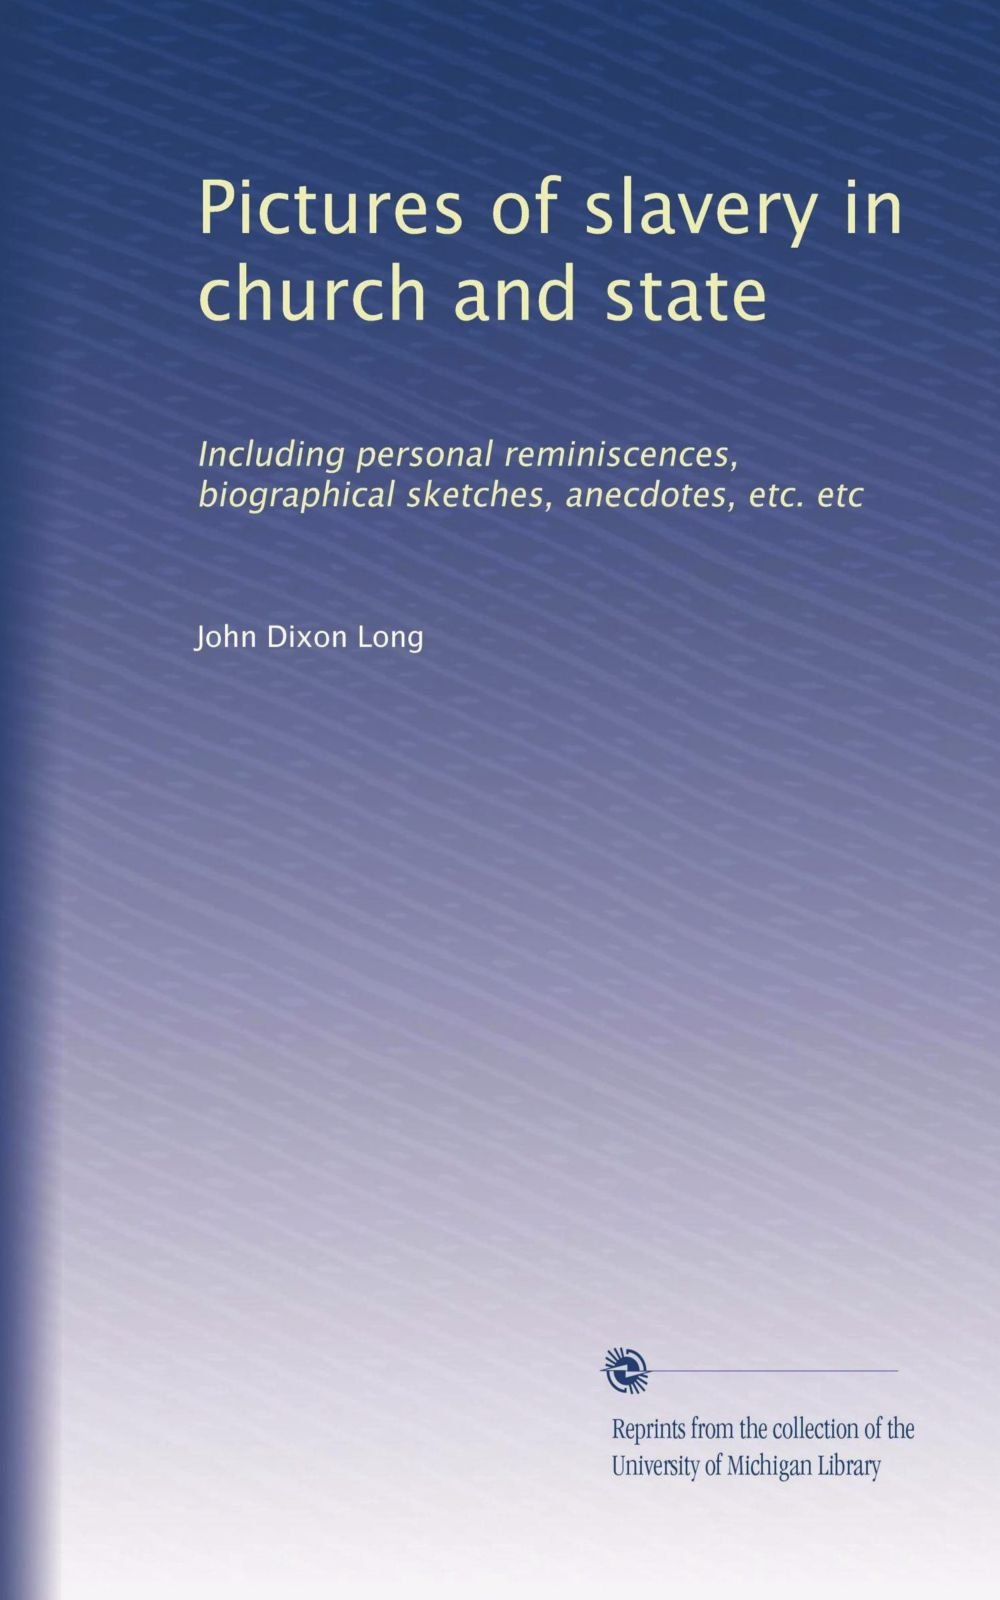 Download Pictures of slavery in church and state: Including personal reminiscences, biographical sketches, anecdotes, etc. etc PDF